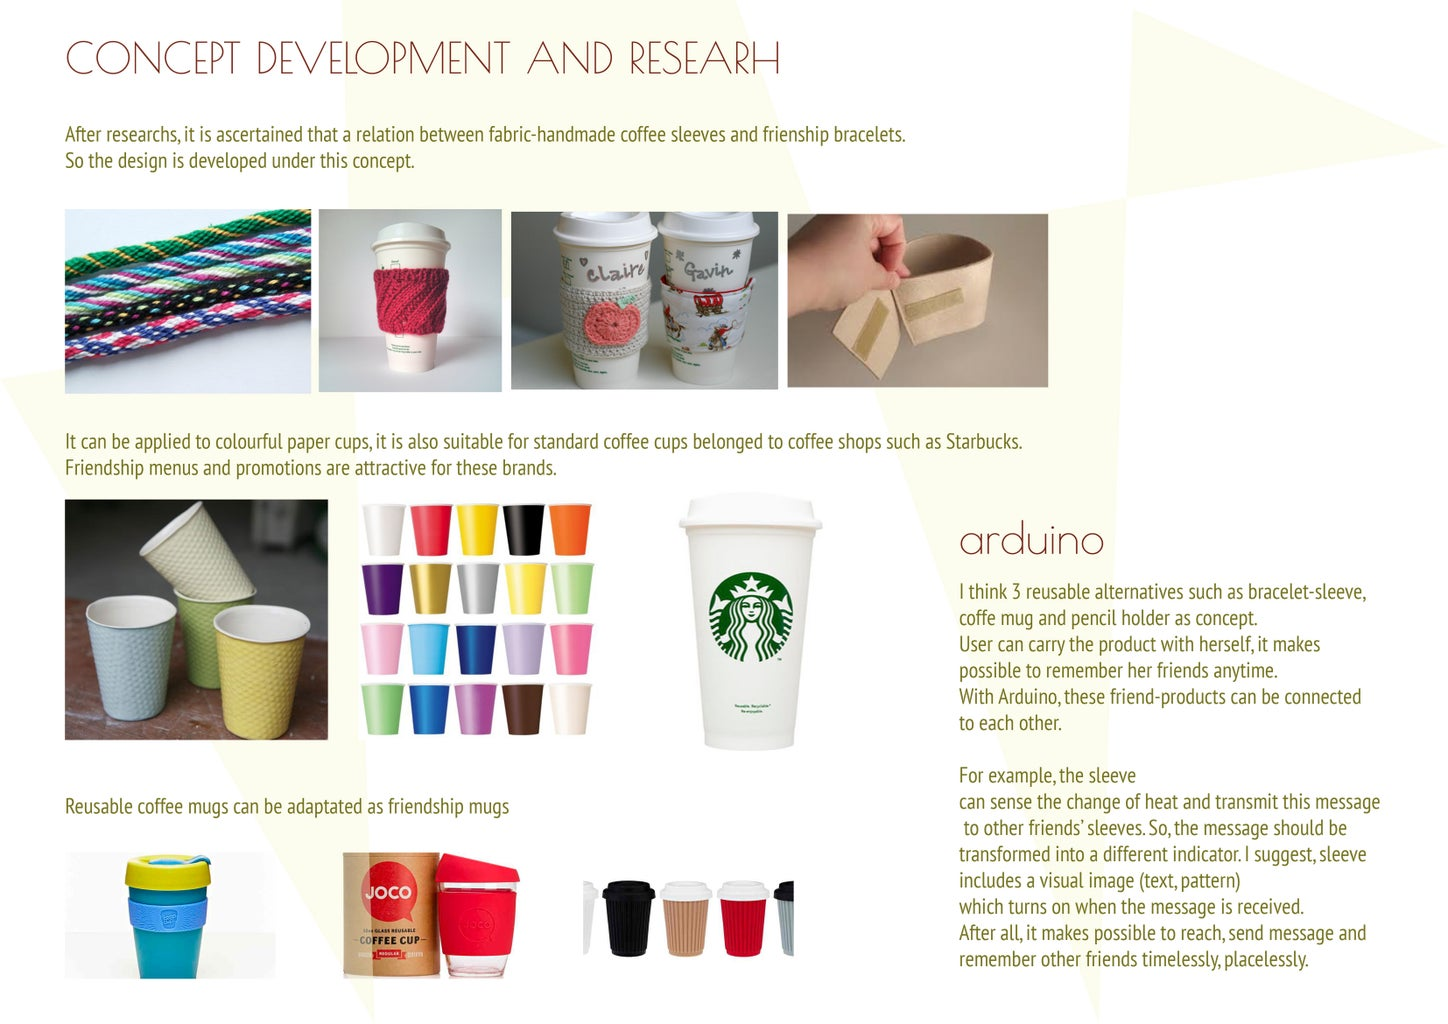 Research and Concept Development